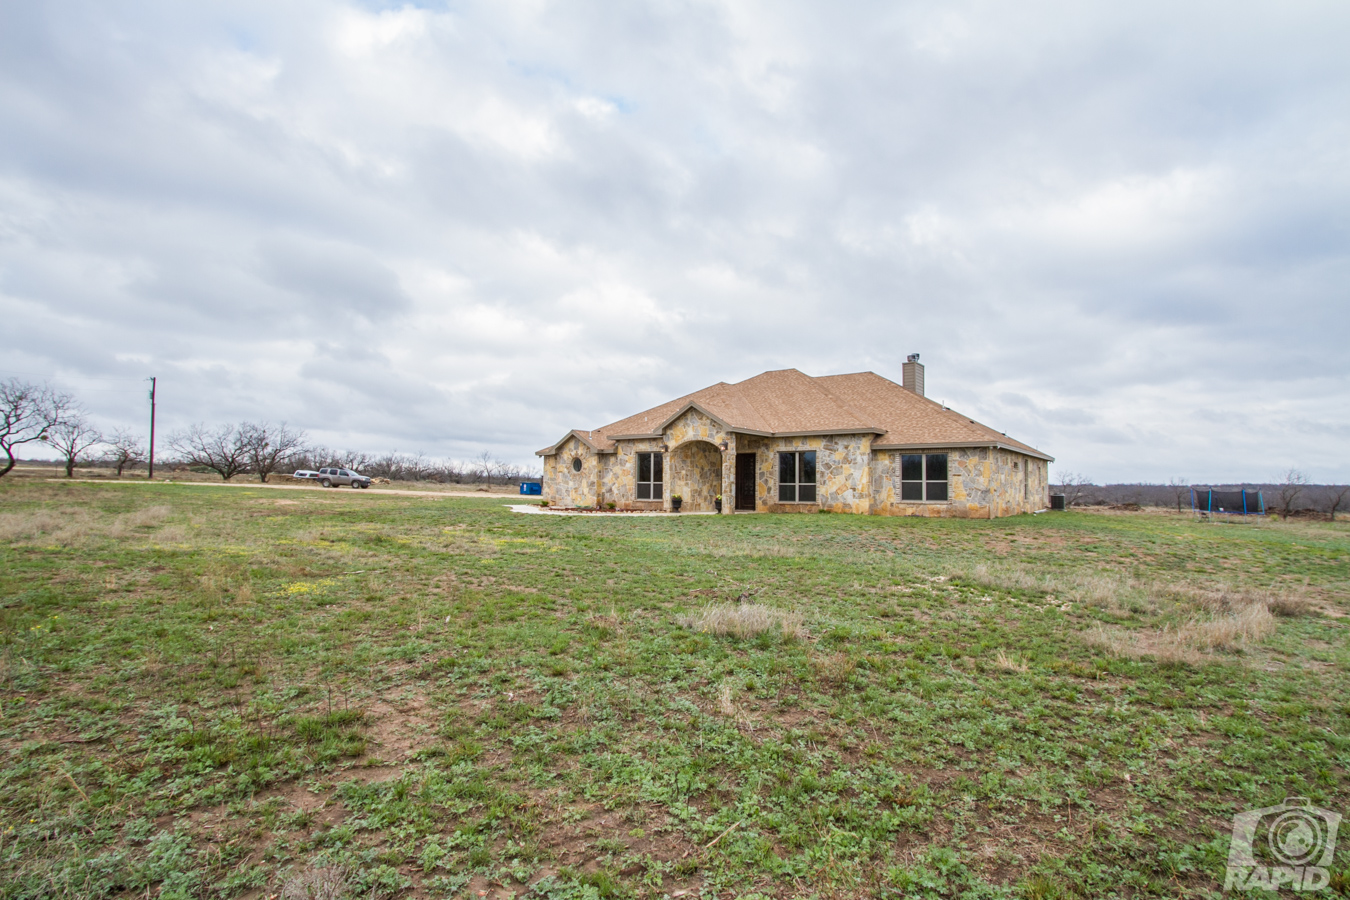 8990 jerimiah lane san angelo tx 76901 homes for sale for Home builders in san angelo tx